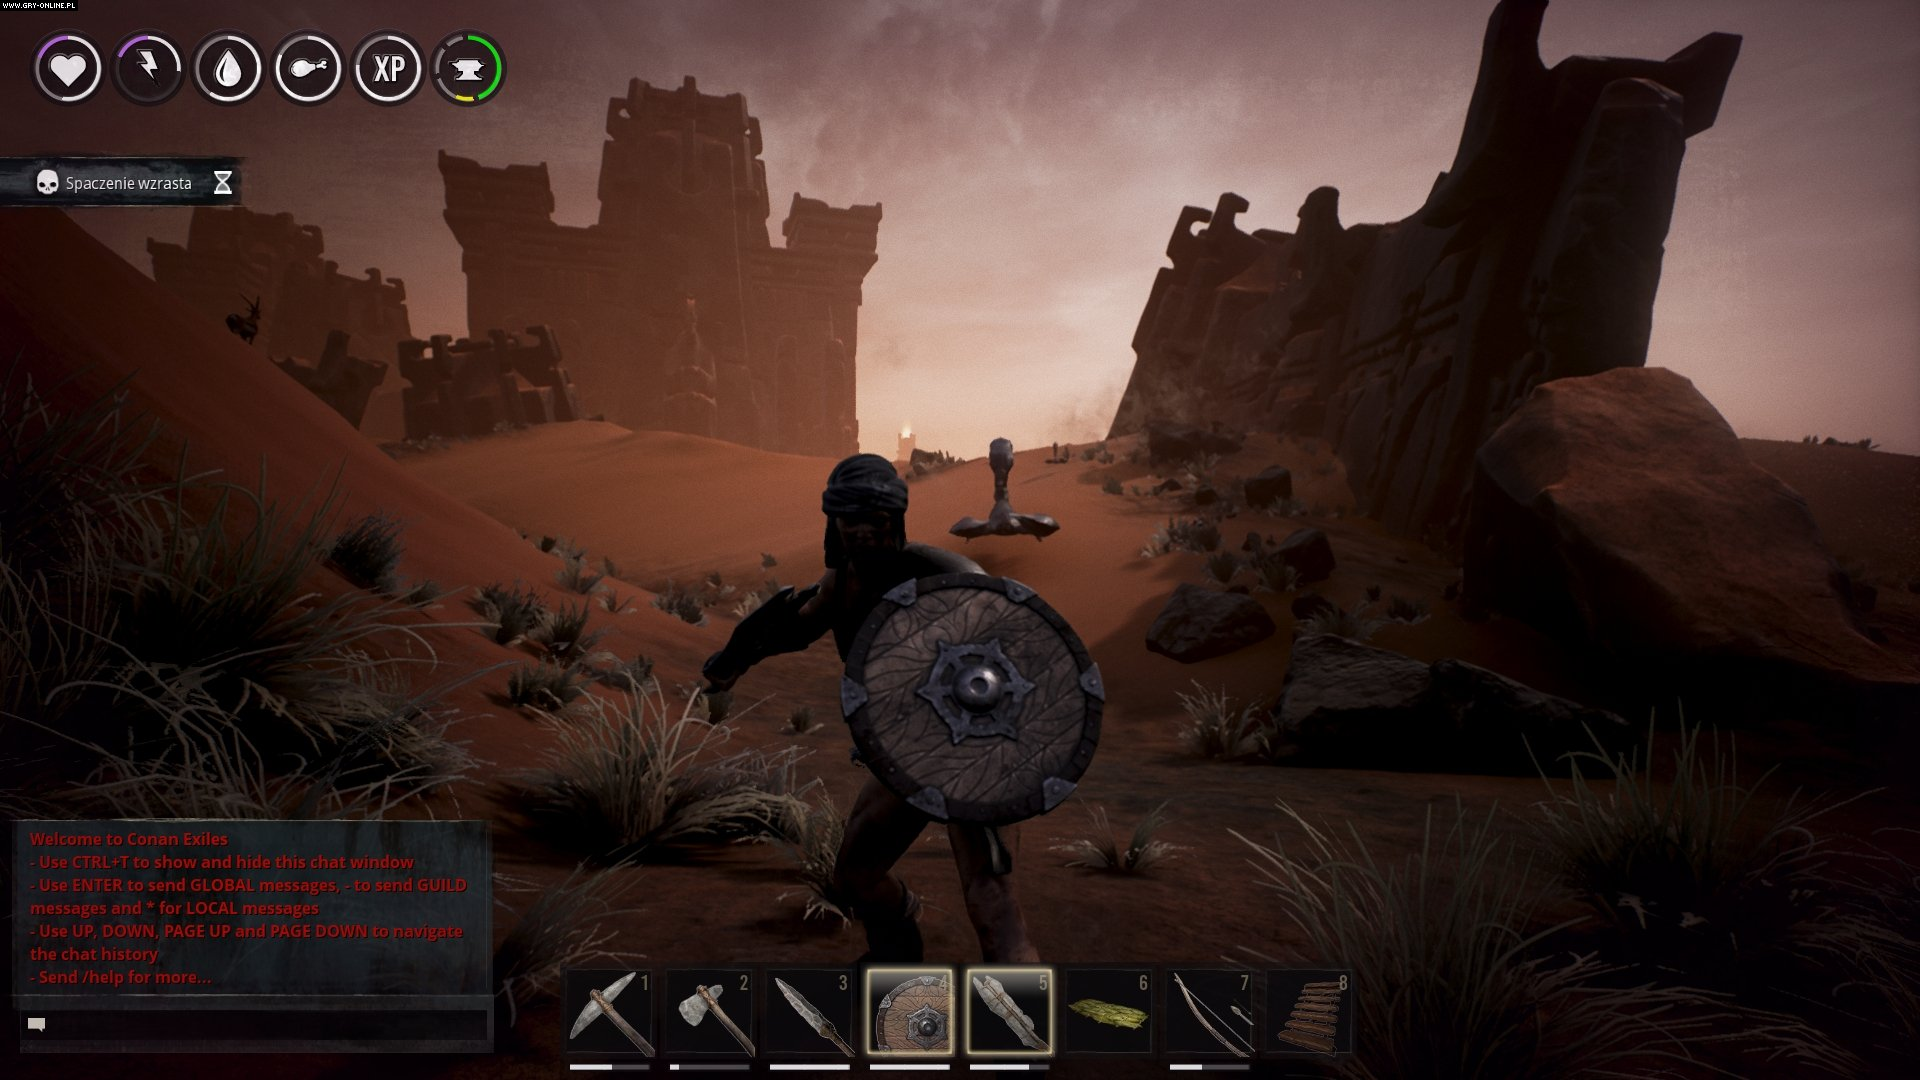 Conan Exiles PC Games Image 20/106, FunCom, Deep Silver / Koch Media